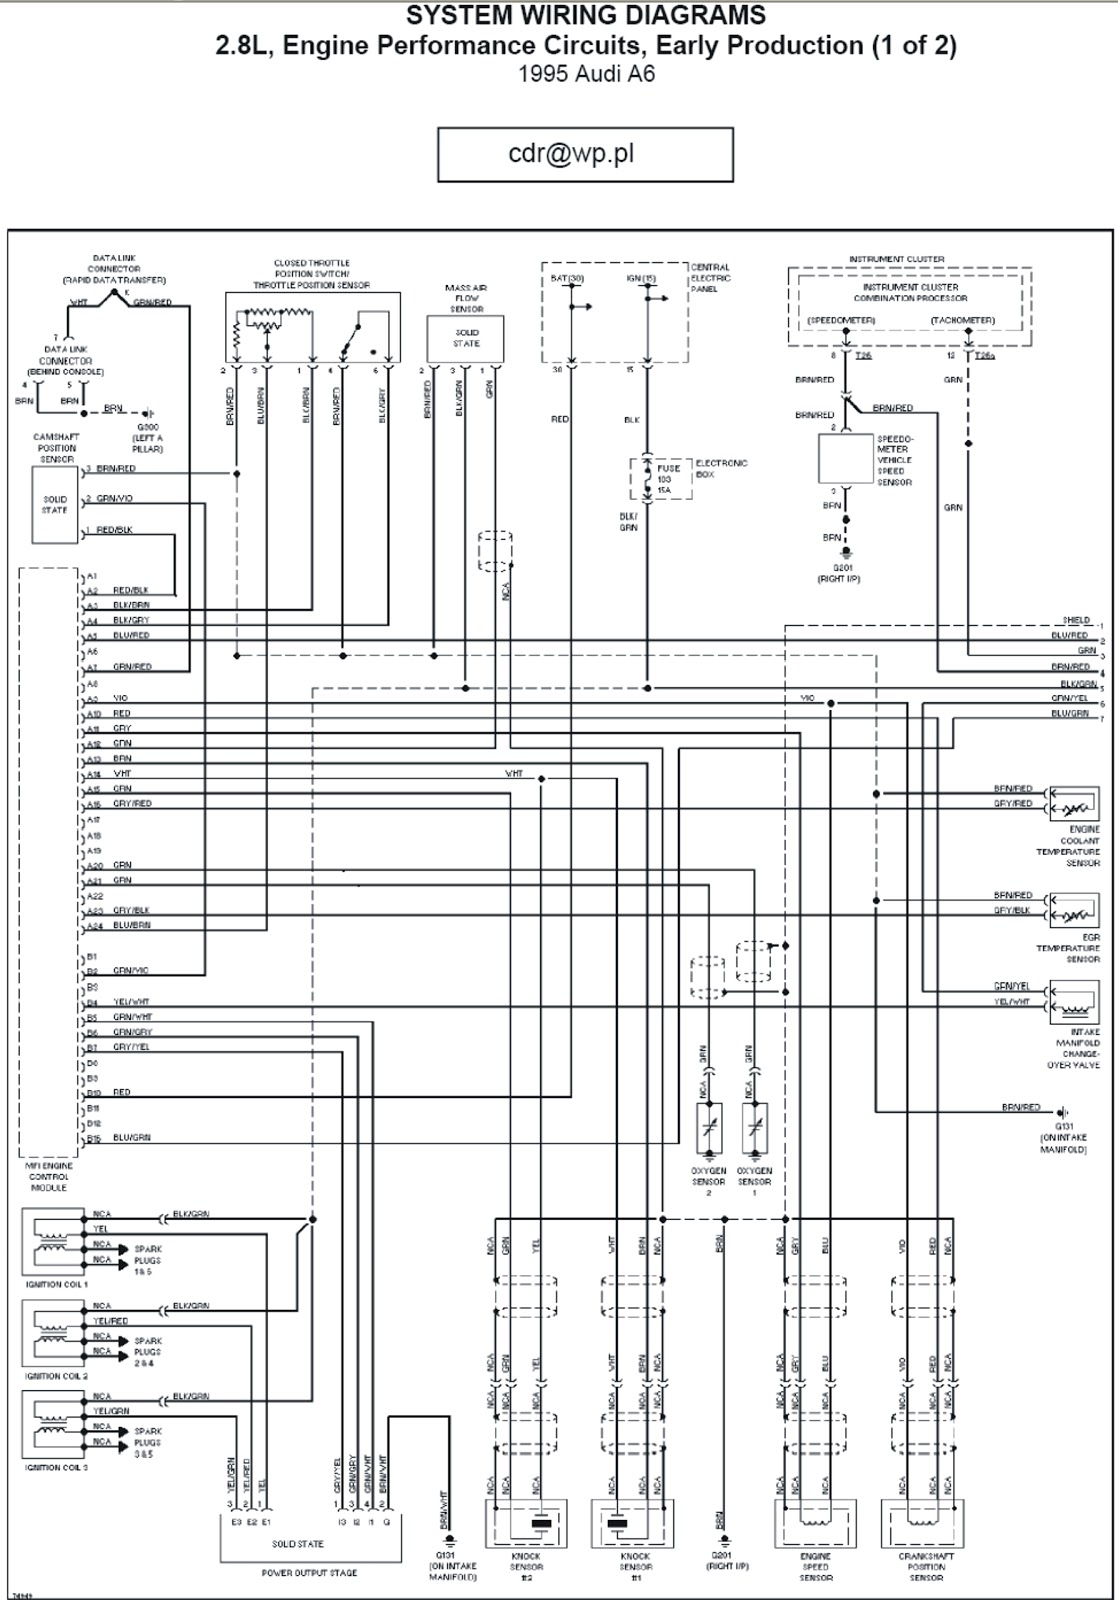 2002 Ford F750 Wiring Diagram For 2 Sd | Wiring Diagram Liries  Ford F Wiring Diagram on isuzu trooper wiring-diagram, ford fuse box diagram, ford truck fuse diagram 2005 f 350, jeep patriot wiring-diagram, ford truck wiring diagrams, chevrolet colorado wiring-diagram, 1973 f100 brakelights wiring-diagram, audi a6 wiring-diagram, toyota sequoia wiring-diagram, kia sedona wiring-diagram, ford f700 wiring diagrams, ford wiring diagram 2004,